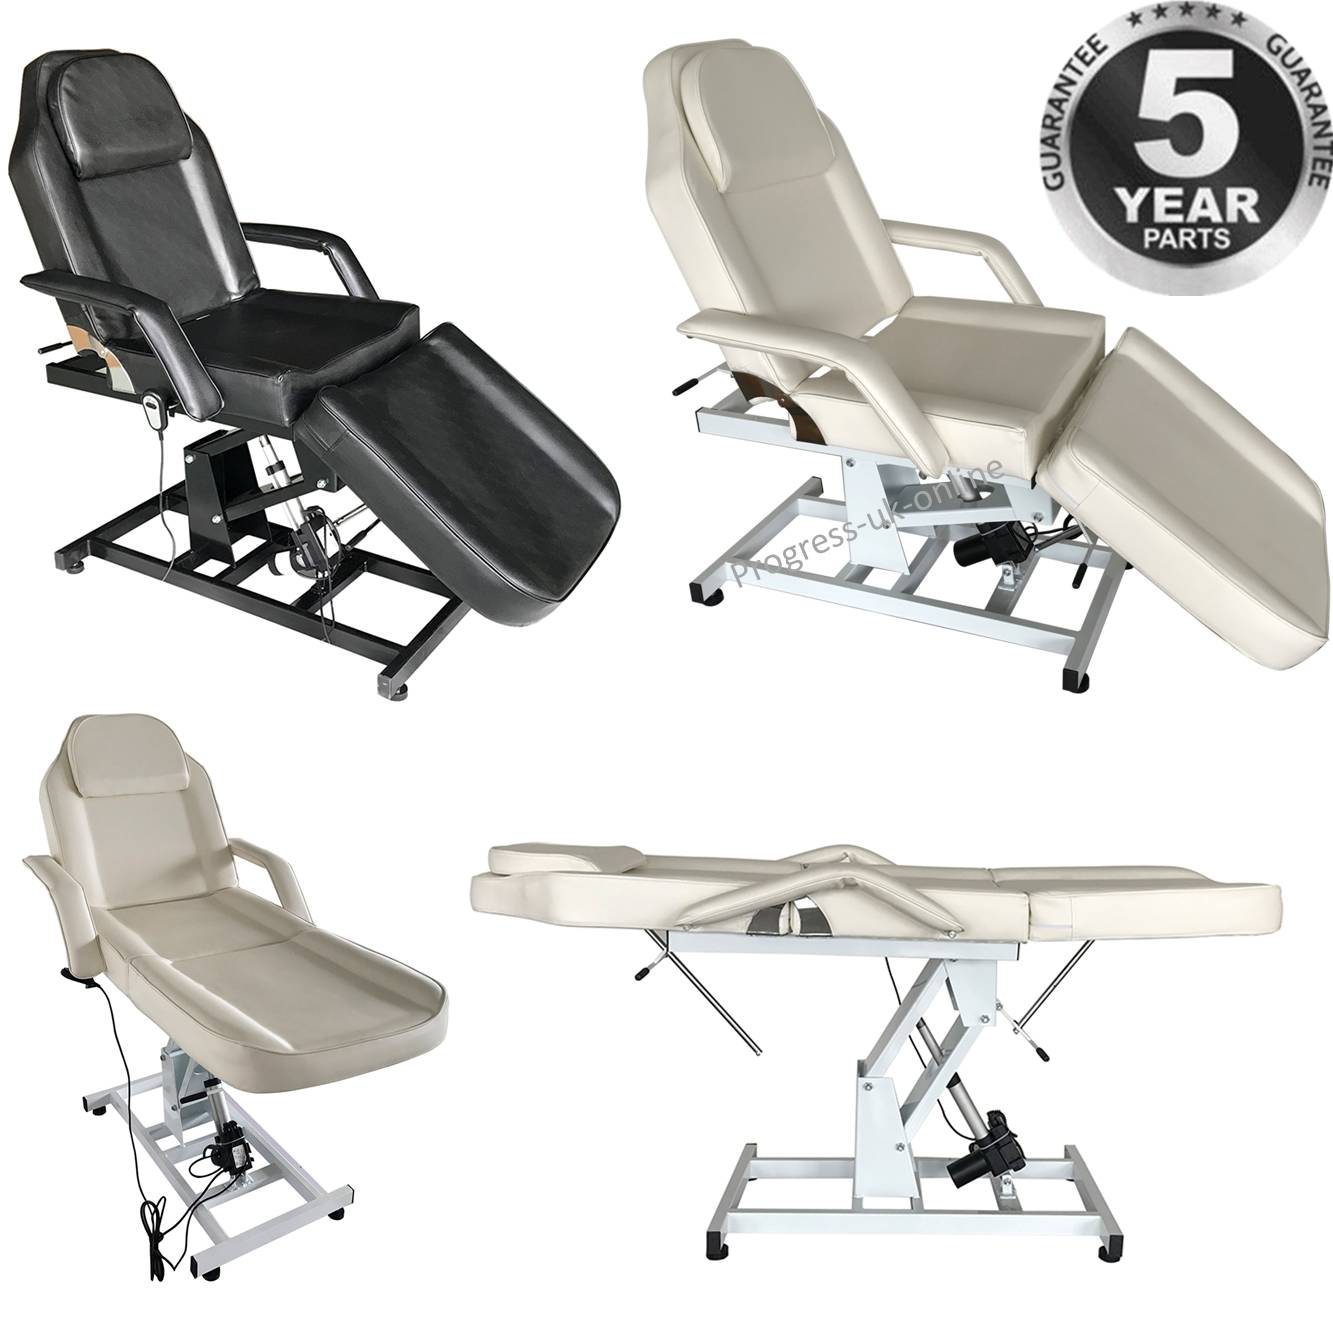 Miraculous Details About Electric Adjustable Beauty Therapy Salon Treatment Massage Table Couch Chair Bed Interior Design Ideas Helimdqseriescom